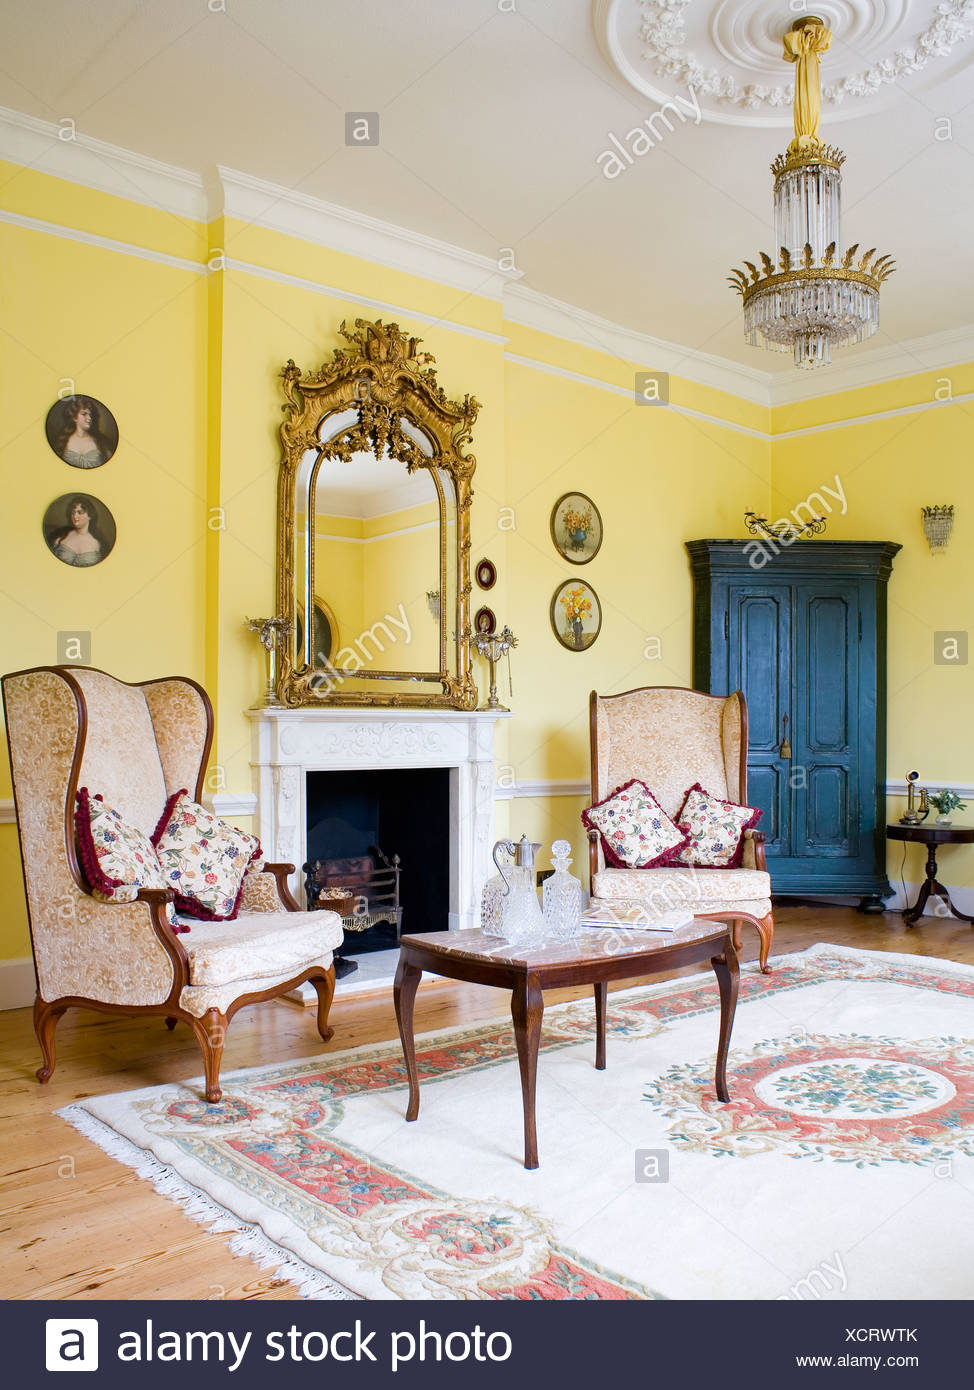 Ornate Gilt Antique Mirror Above Fireplace In Yellow Drawing Room With  Cream Wing Chairs On